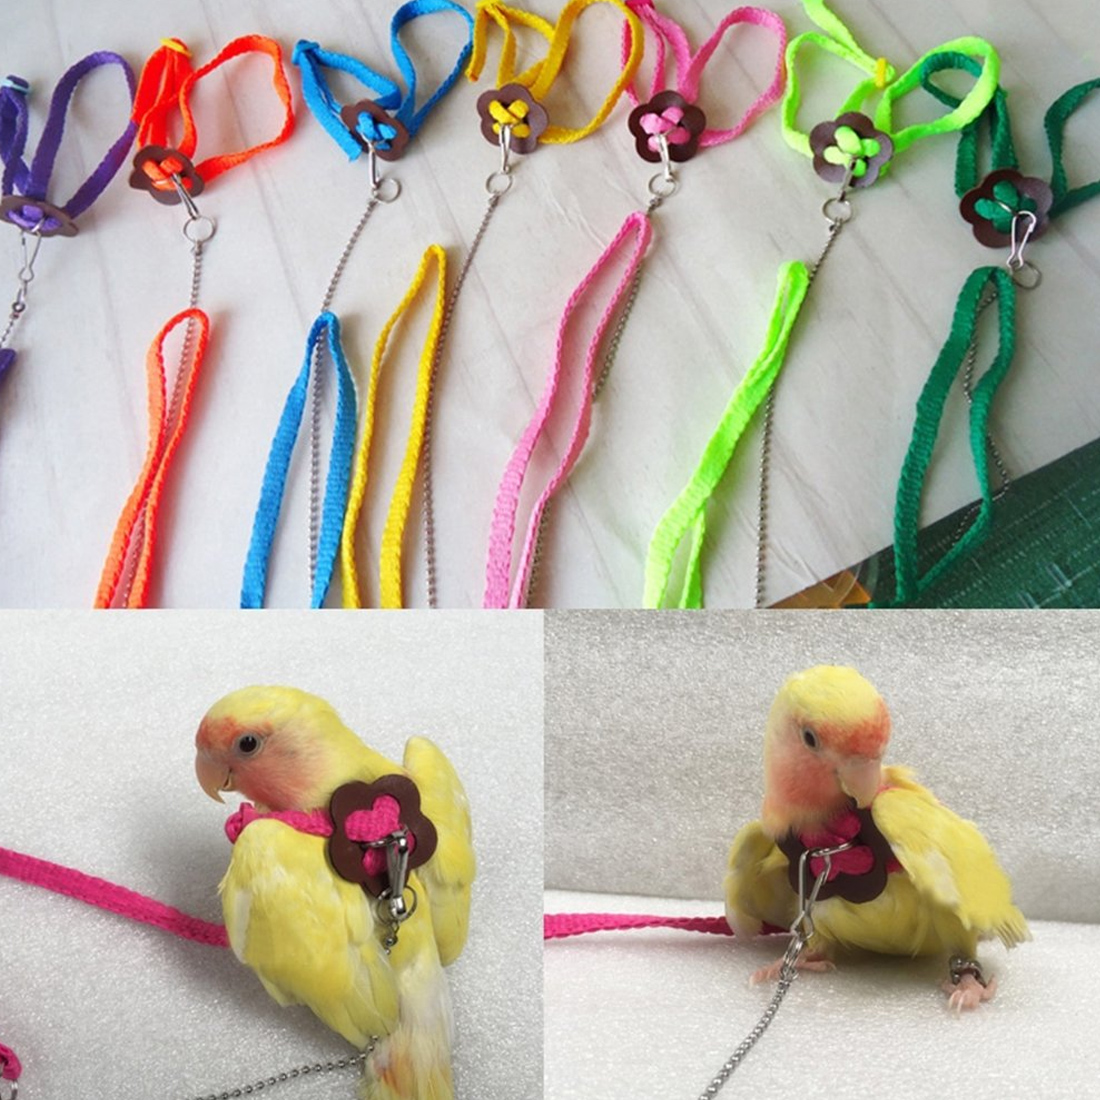 Adjustable Colorful Parrot Bird Leash Outdoor Harness Training Rope Flying Cross Band 120cm